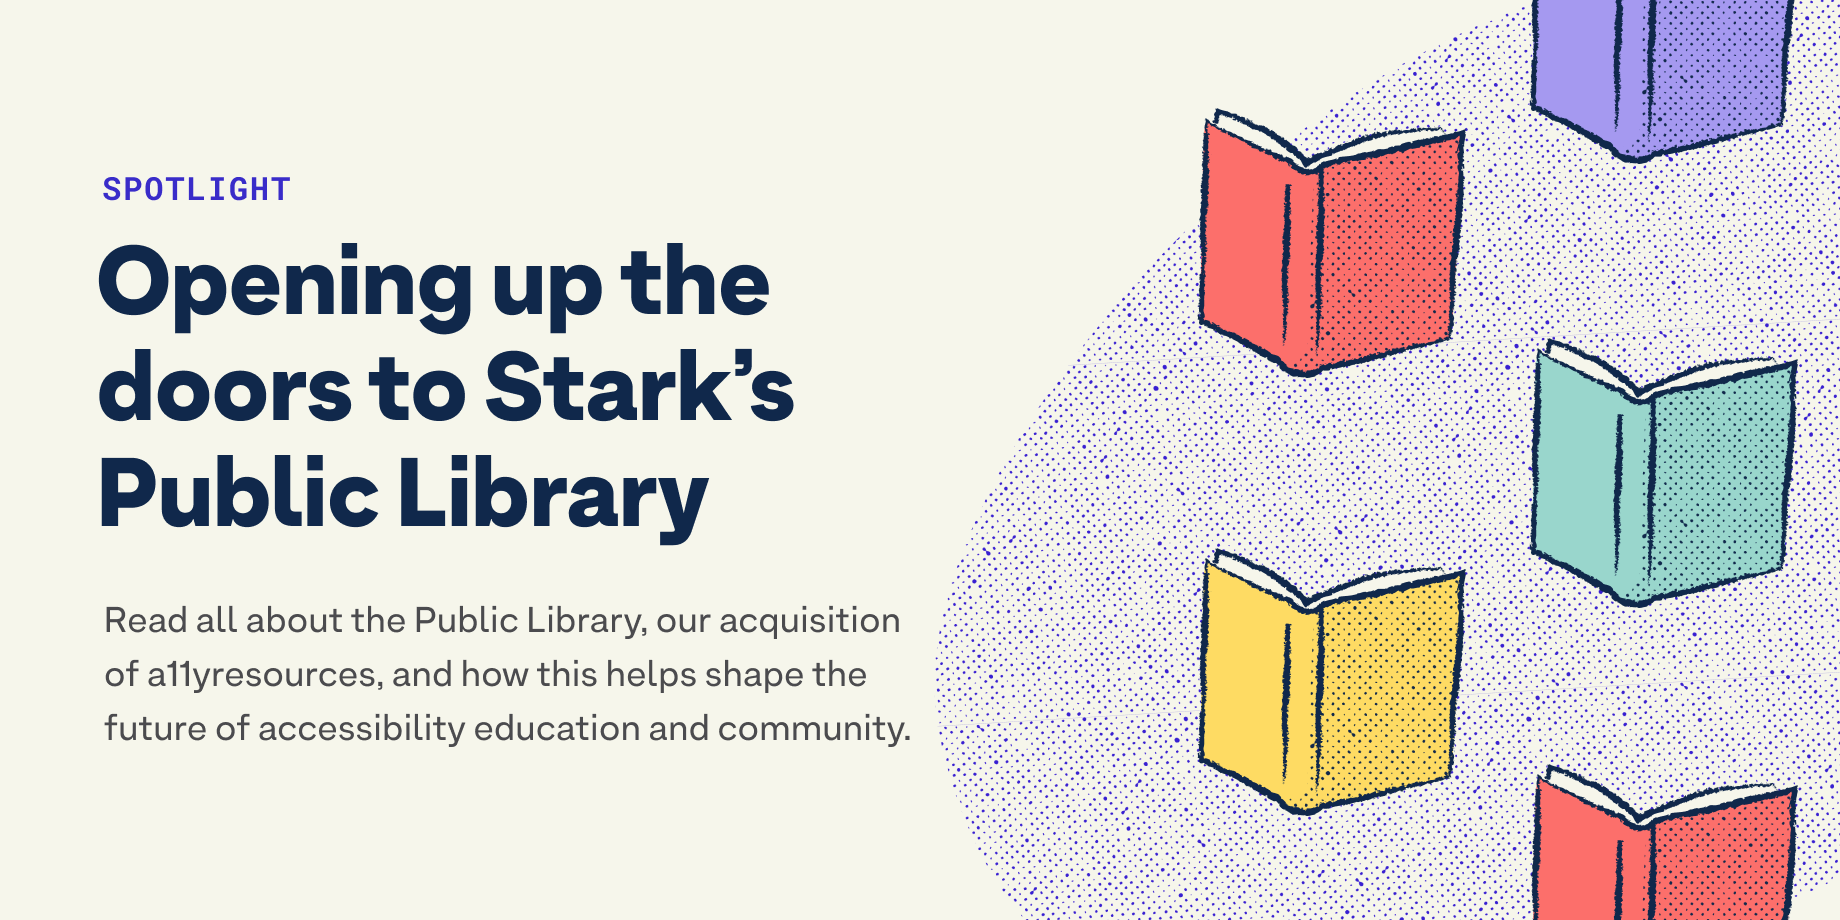 Read about our Public Library launch and how we're setting out to help shape the future of accessibility education and community